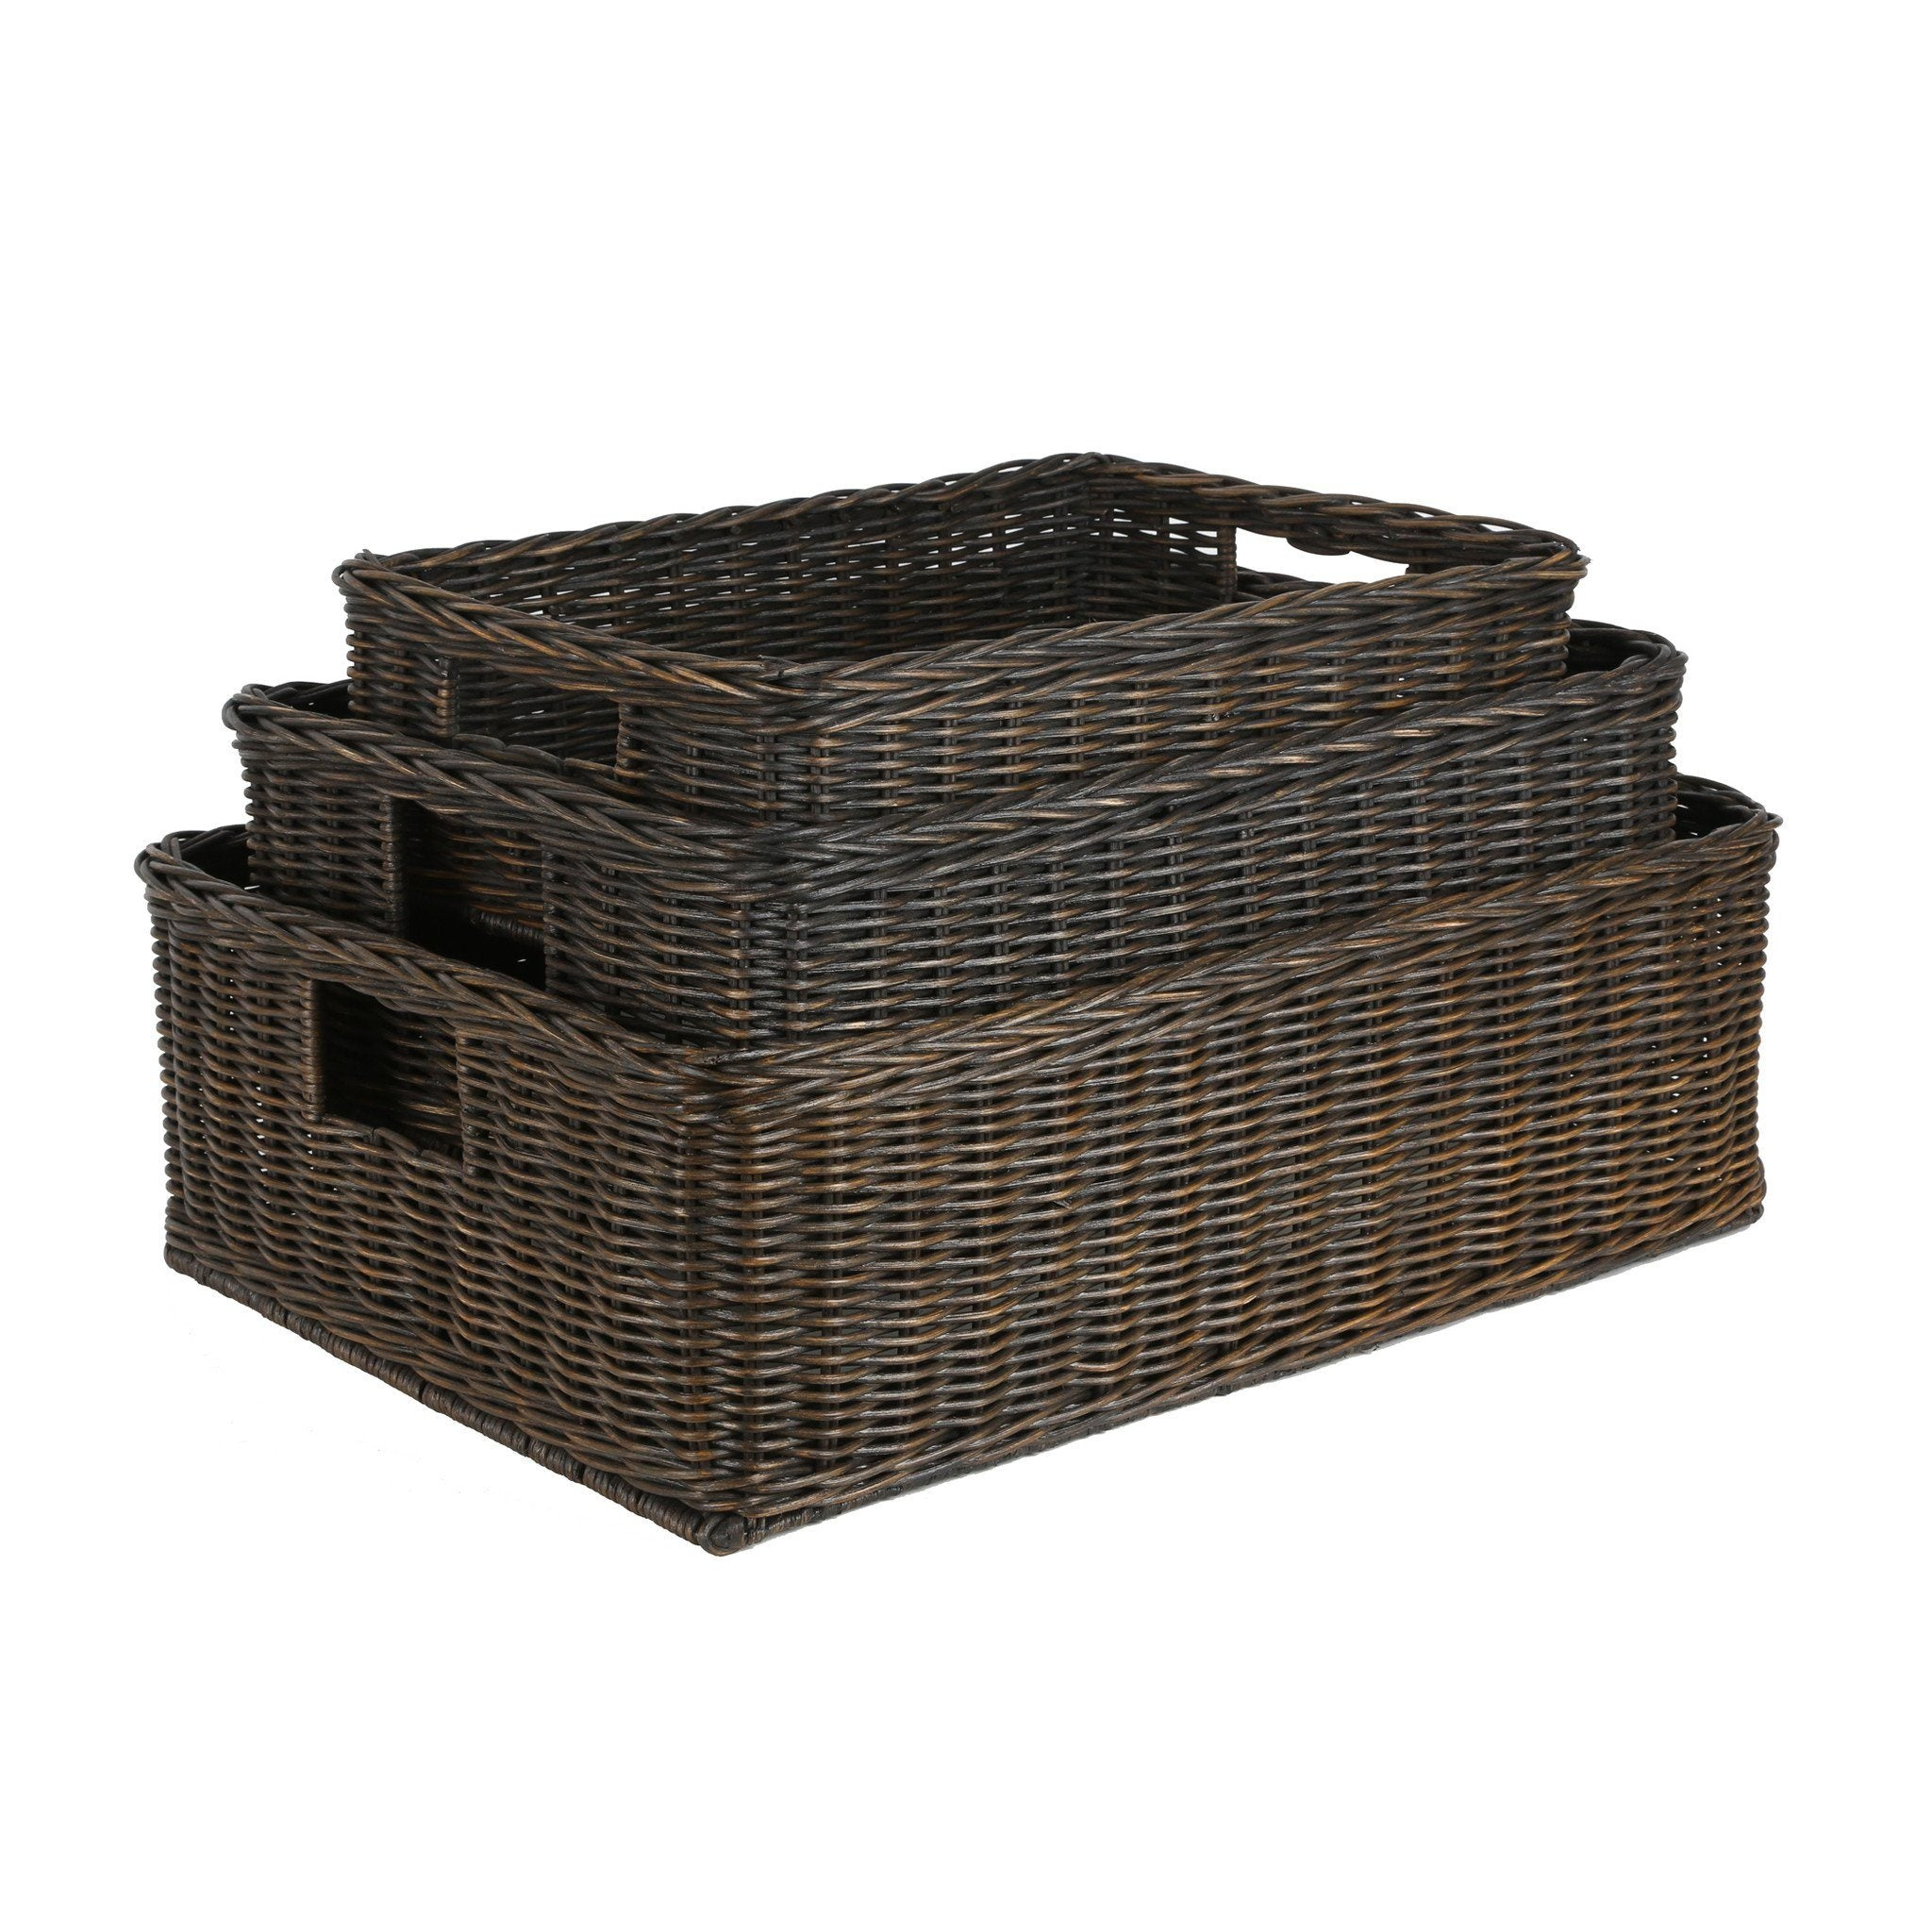 The Basket Lady Underbed Wicker Storage Basket in Antique Walnut Brown 3 sizes shown from The  sc 1 st  The Basket Lady & Wicker Underbed Storage Baskets Bins u0026 Containers - The Basket Lady